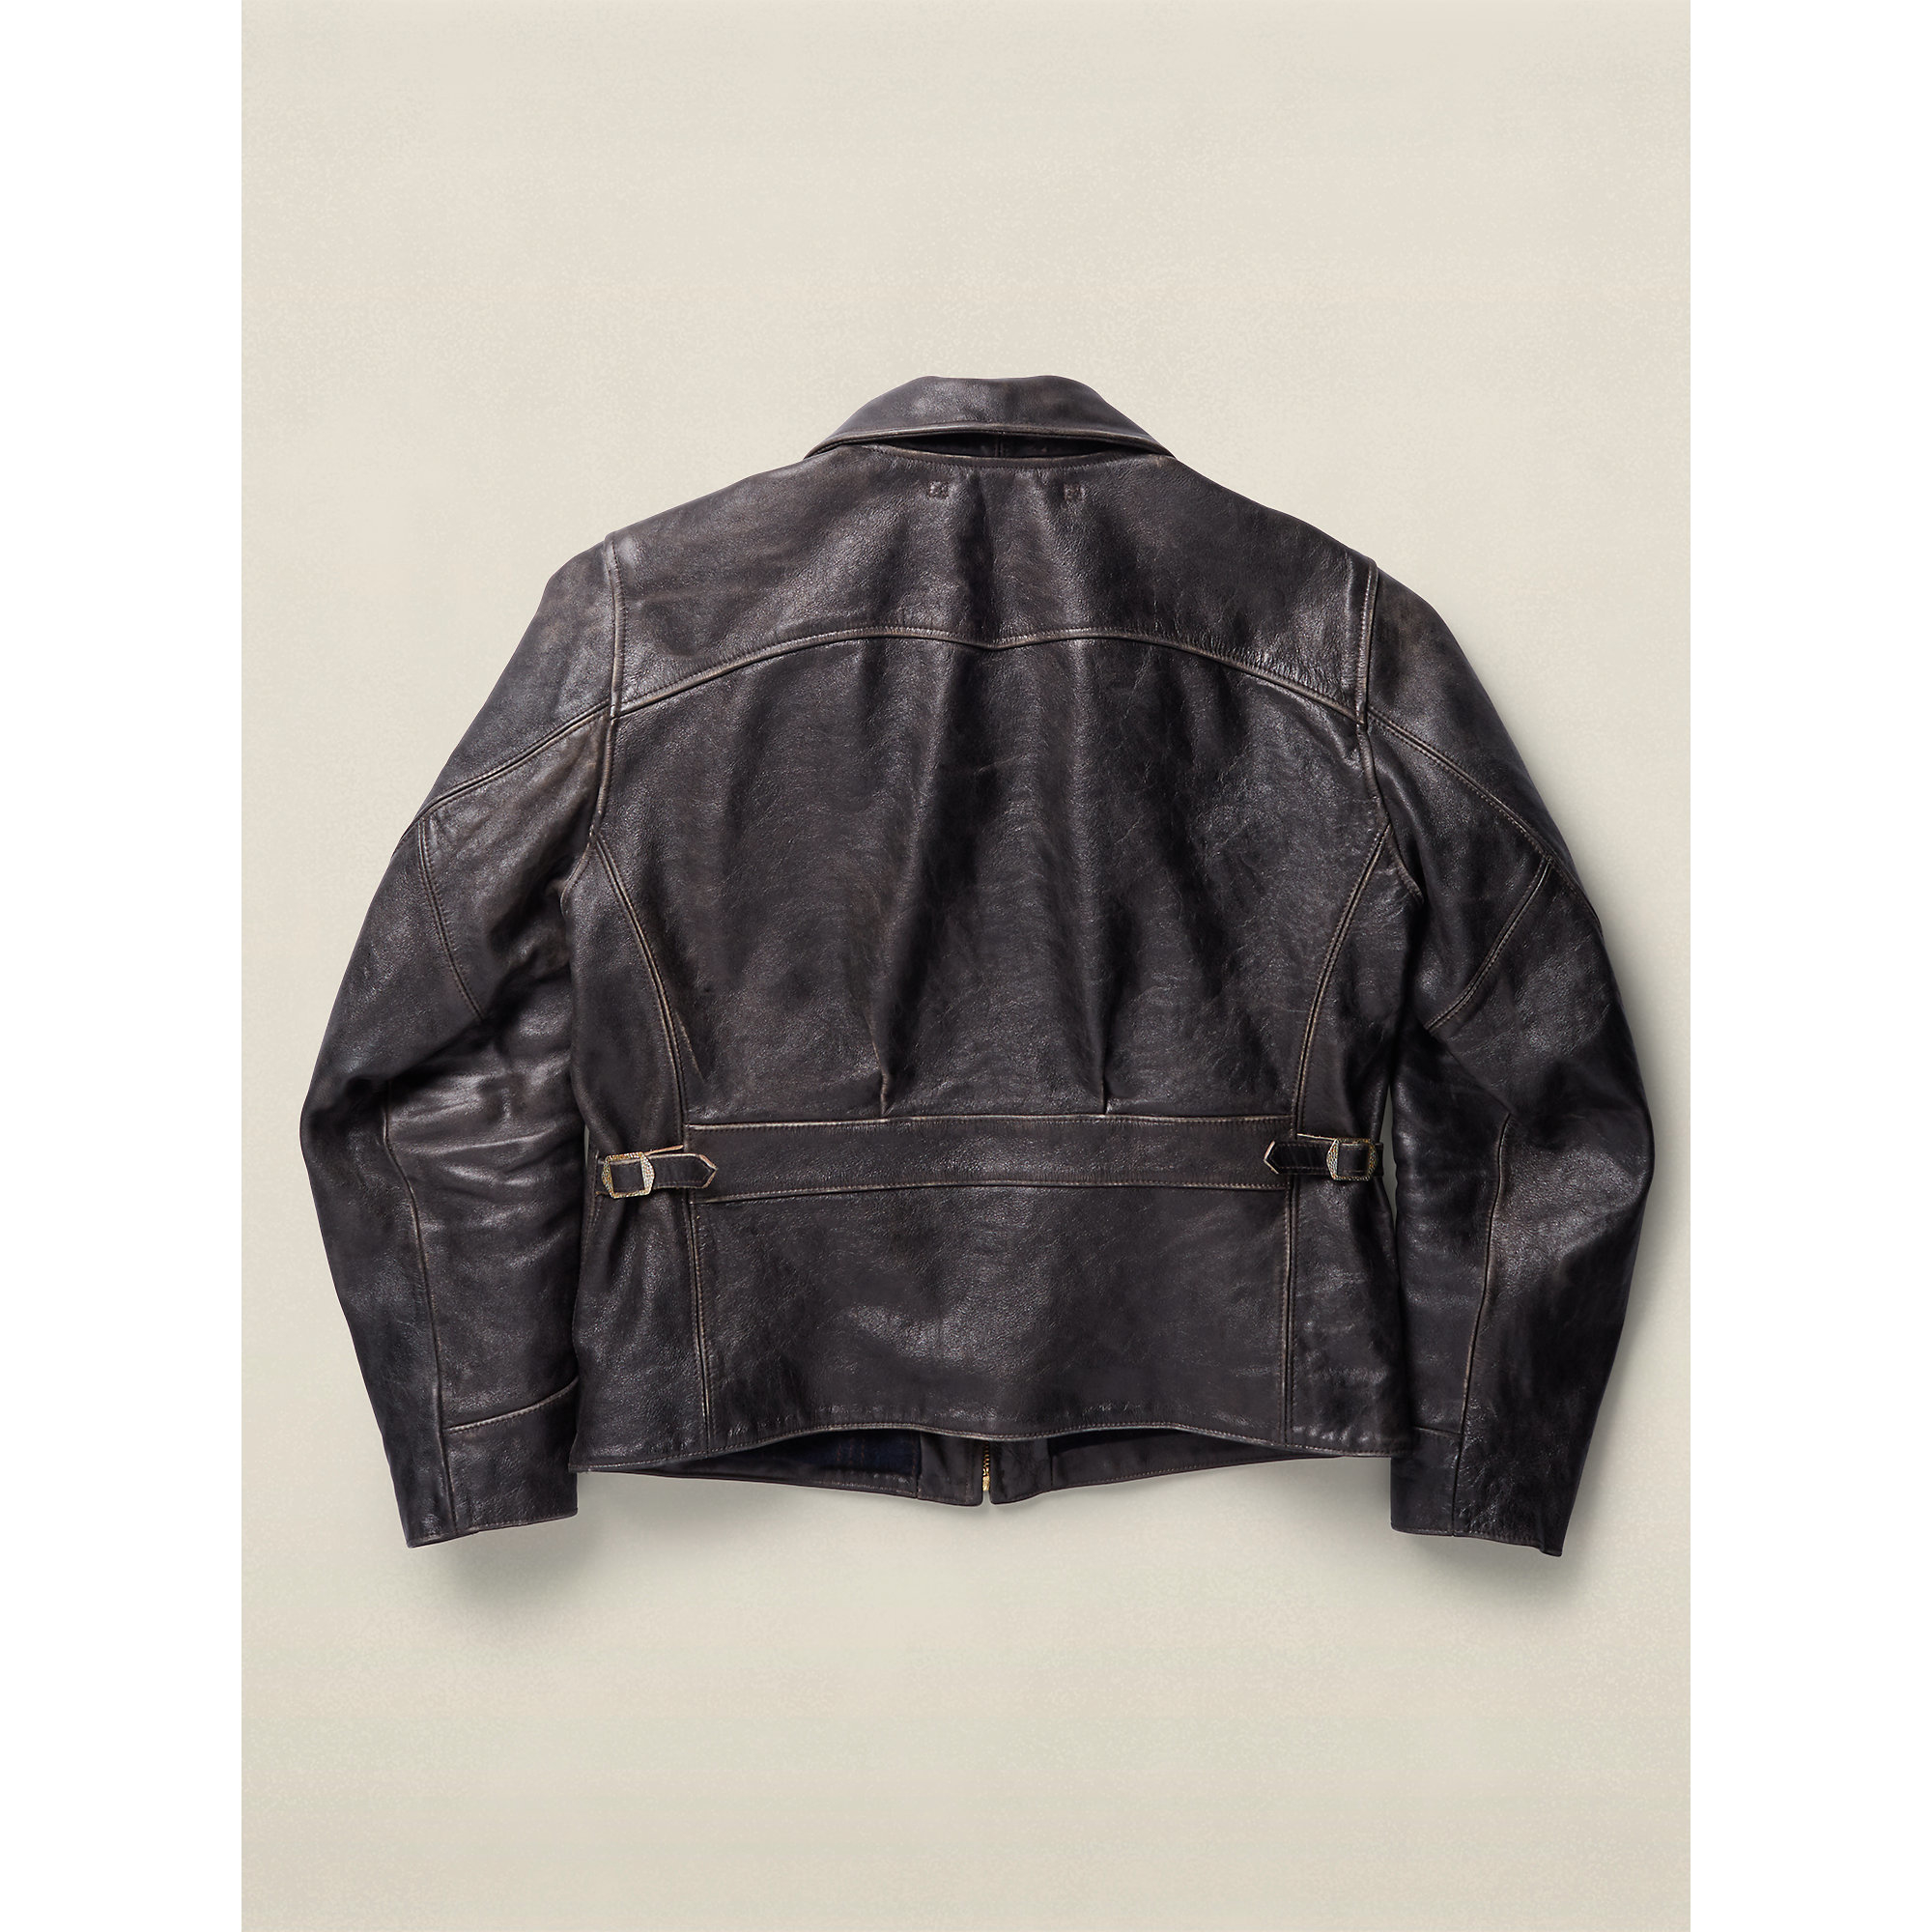 Rrl leather jacket